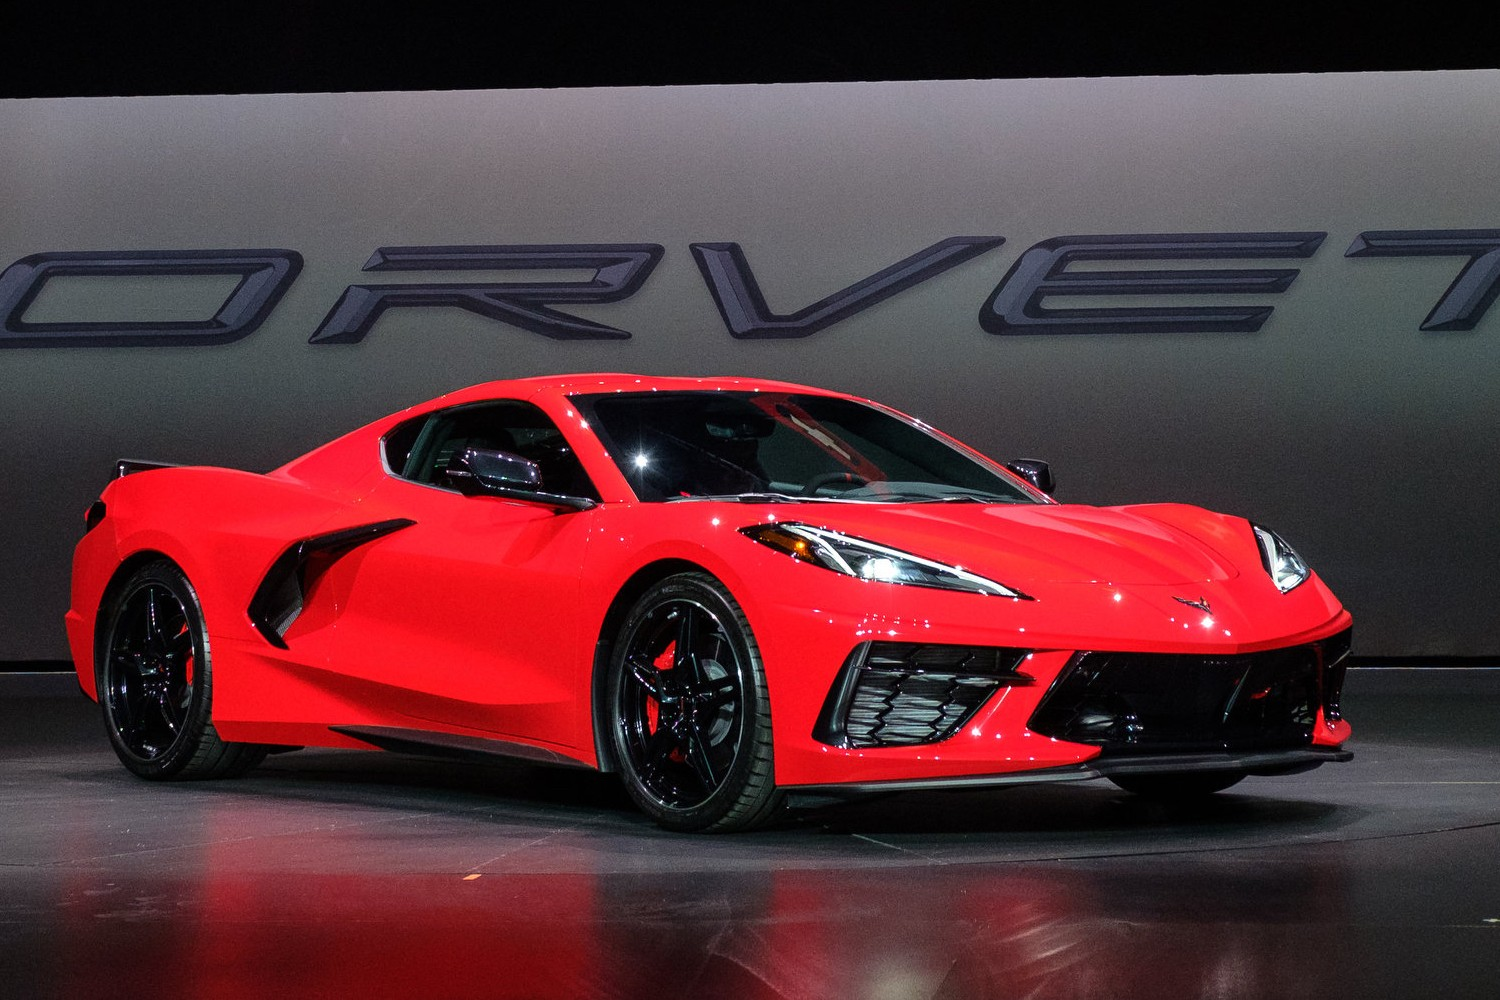 Mid Engine Corvette Outsells Porsche 911 ... and Every Other Sports Car in the Segment